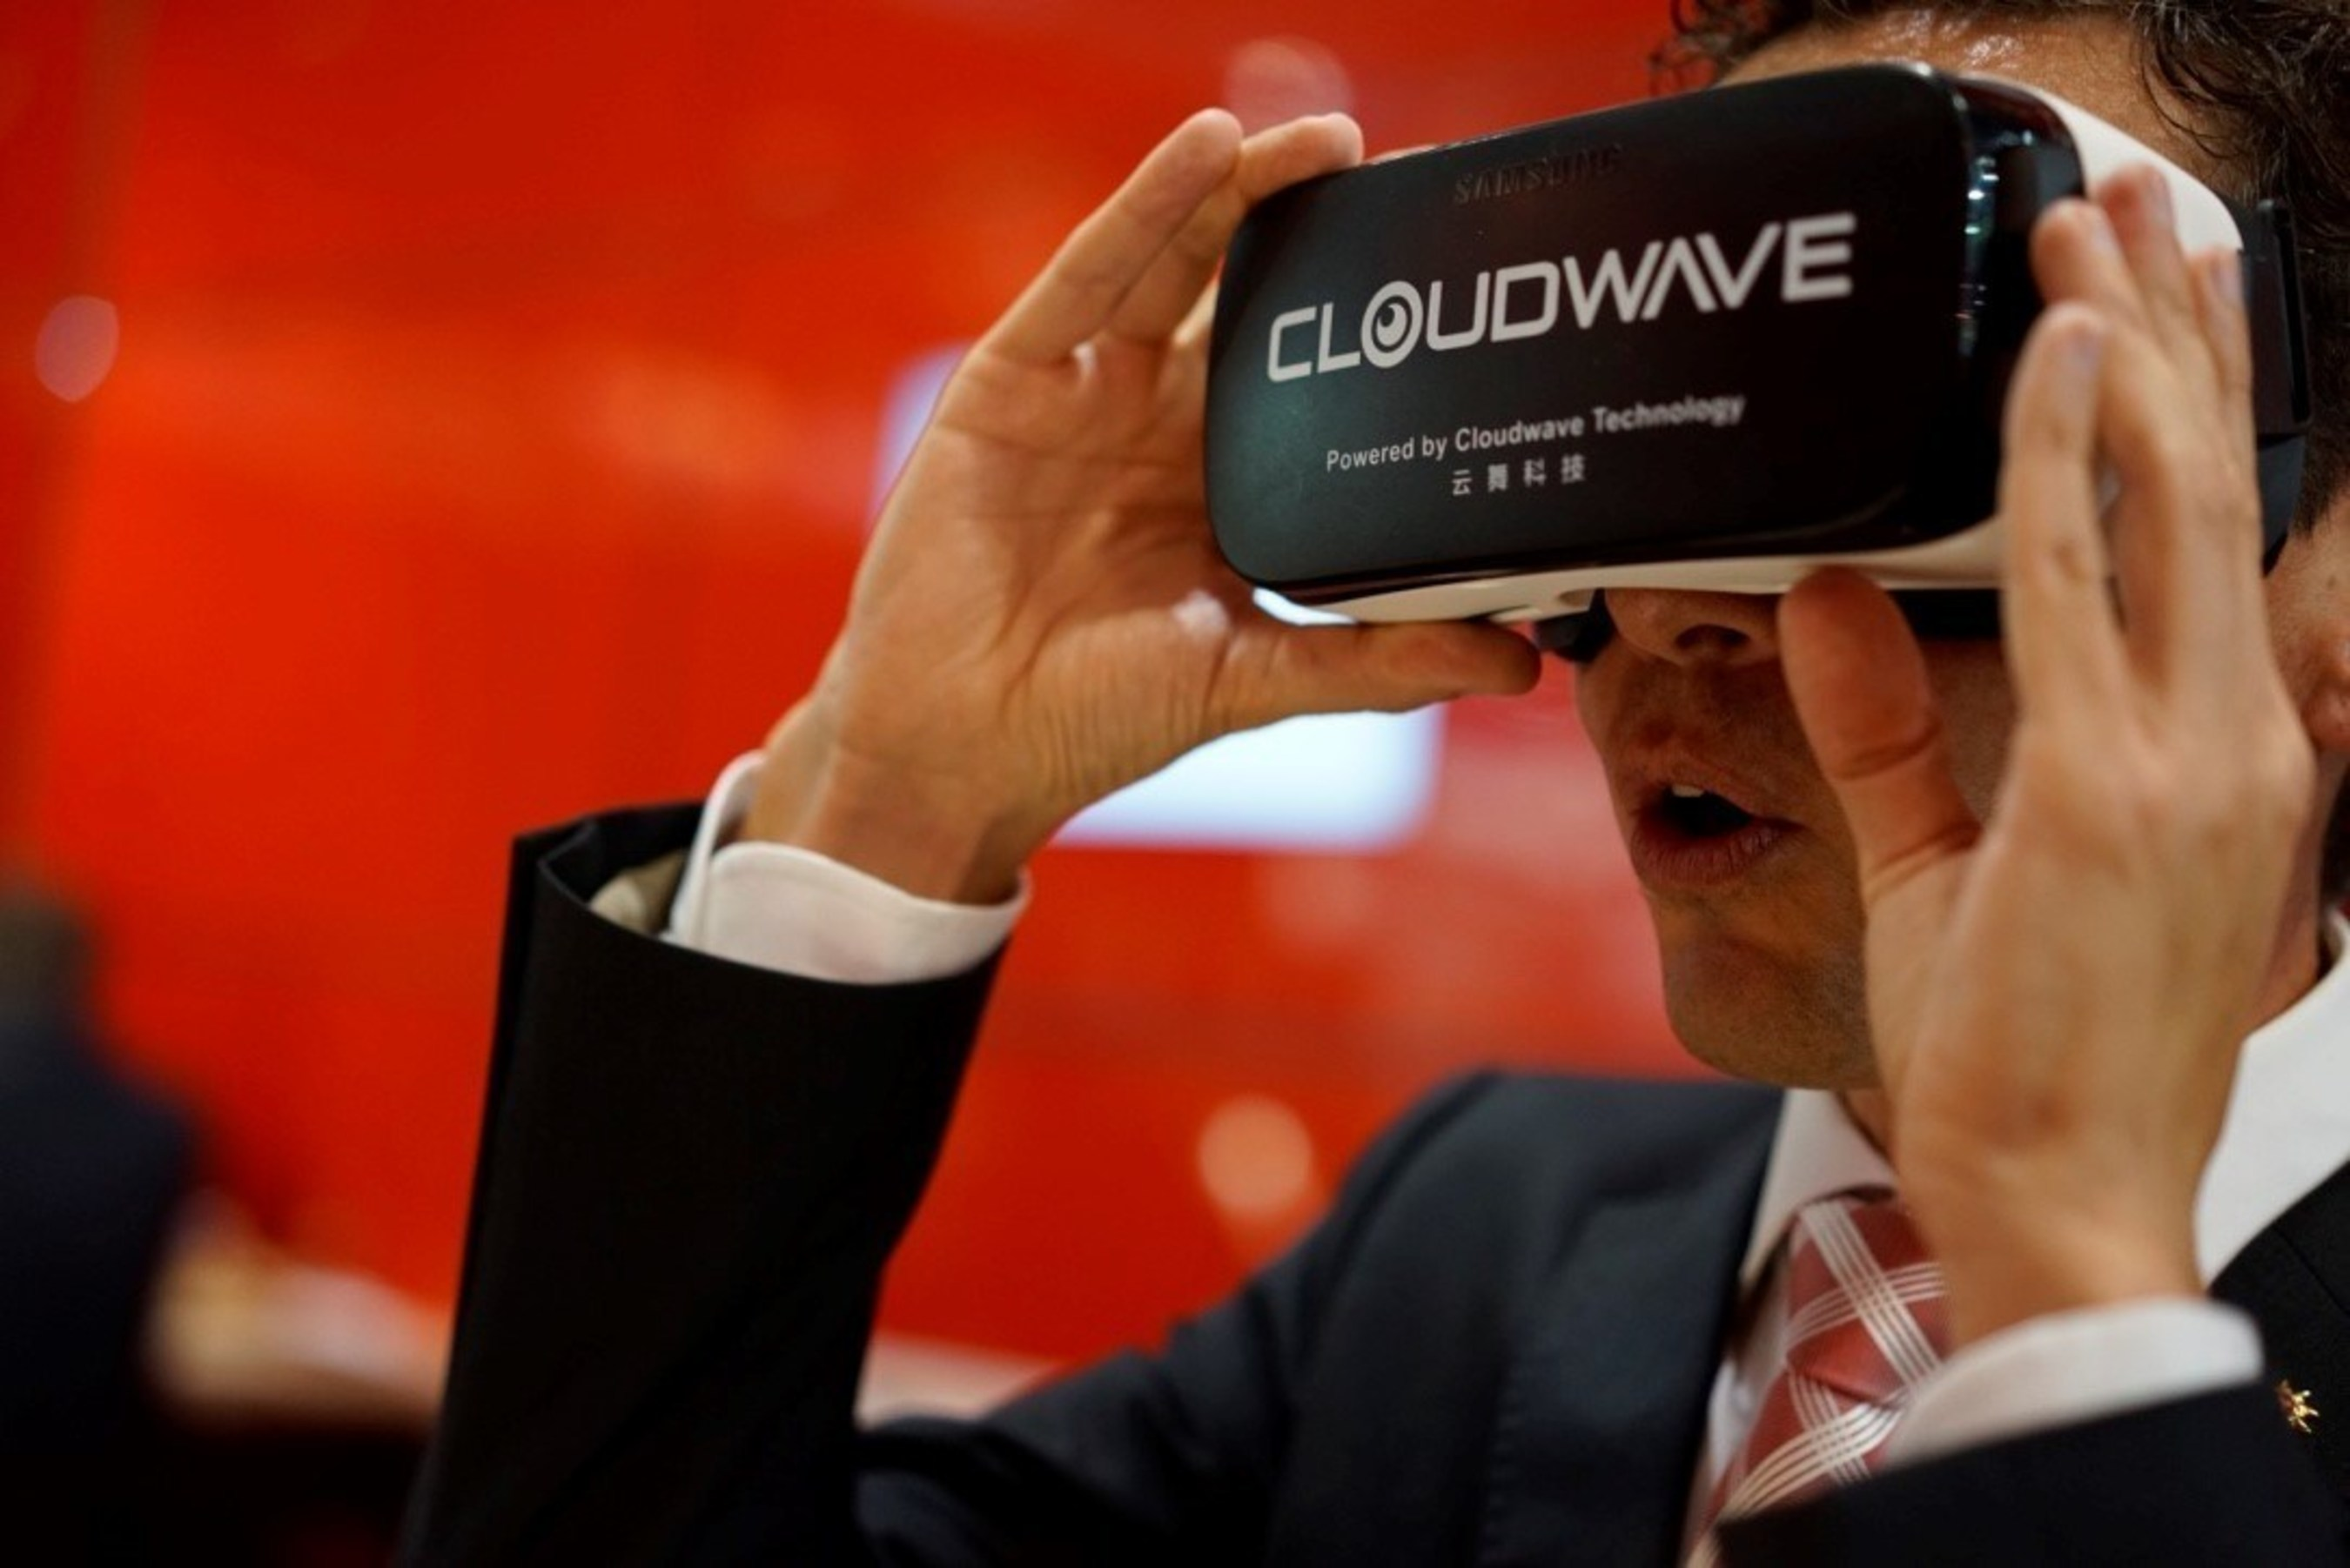 Swiss Asia Pacific Marketing Director is experiencing Cloudwave VR contents